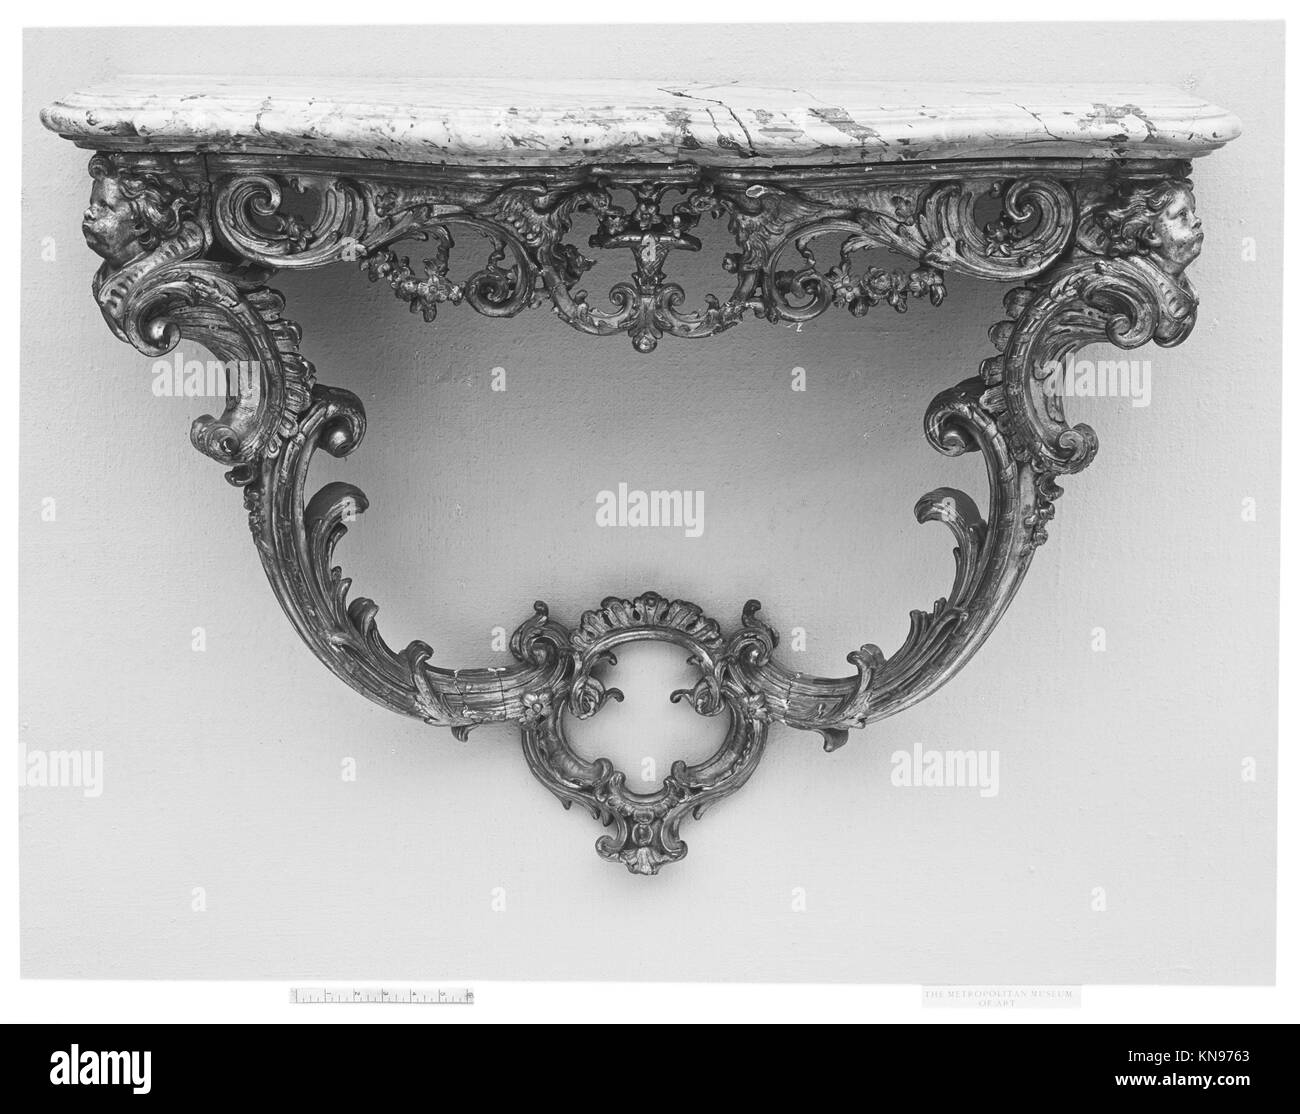 Console table MET 4325 Console table MET 4325 /189466 French, Console table, 18th century, Carved and gilded oak; - Stock Image